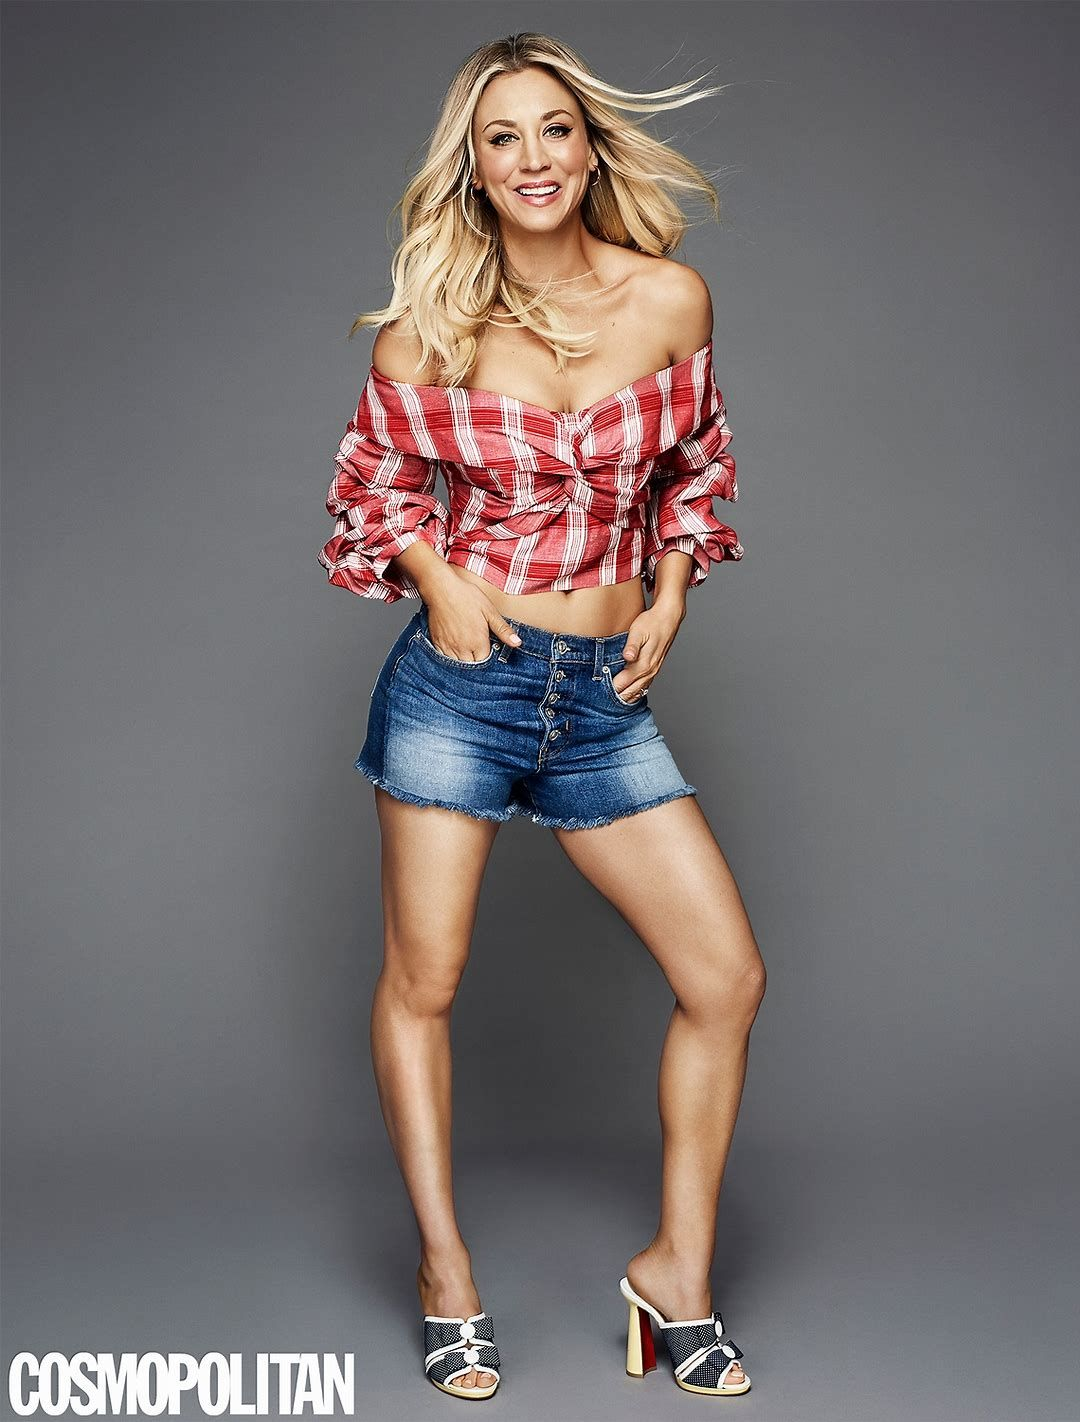 Kaley cuoco fappening